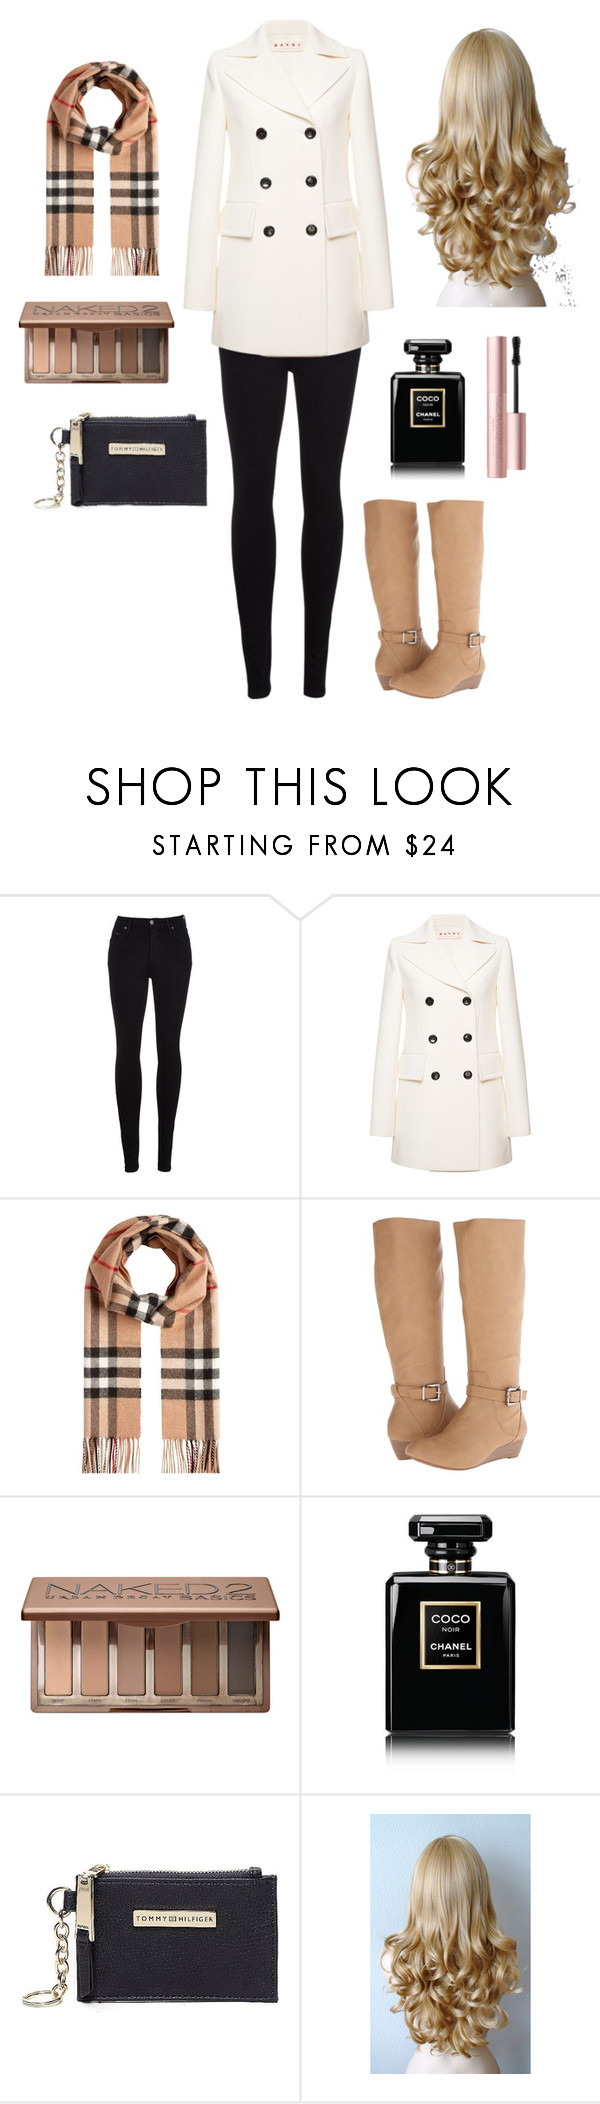 """""""rich girl"""" by ariel-1017 on Polyvore featuring Citizens of Humanity, Marni, Burberry, Jessica Simpson, Urban Decay, Chanel, Tommy Hilfiger and Too Faced Cosmetics"""